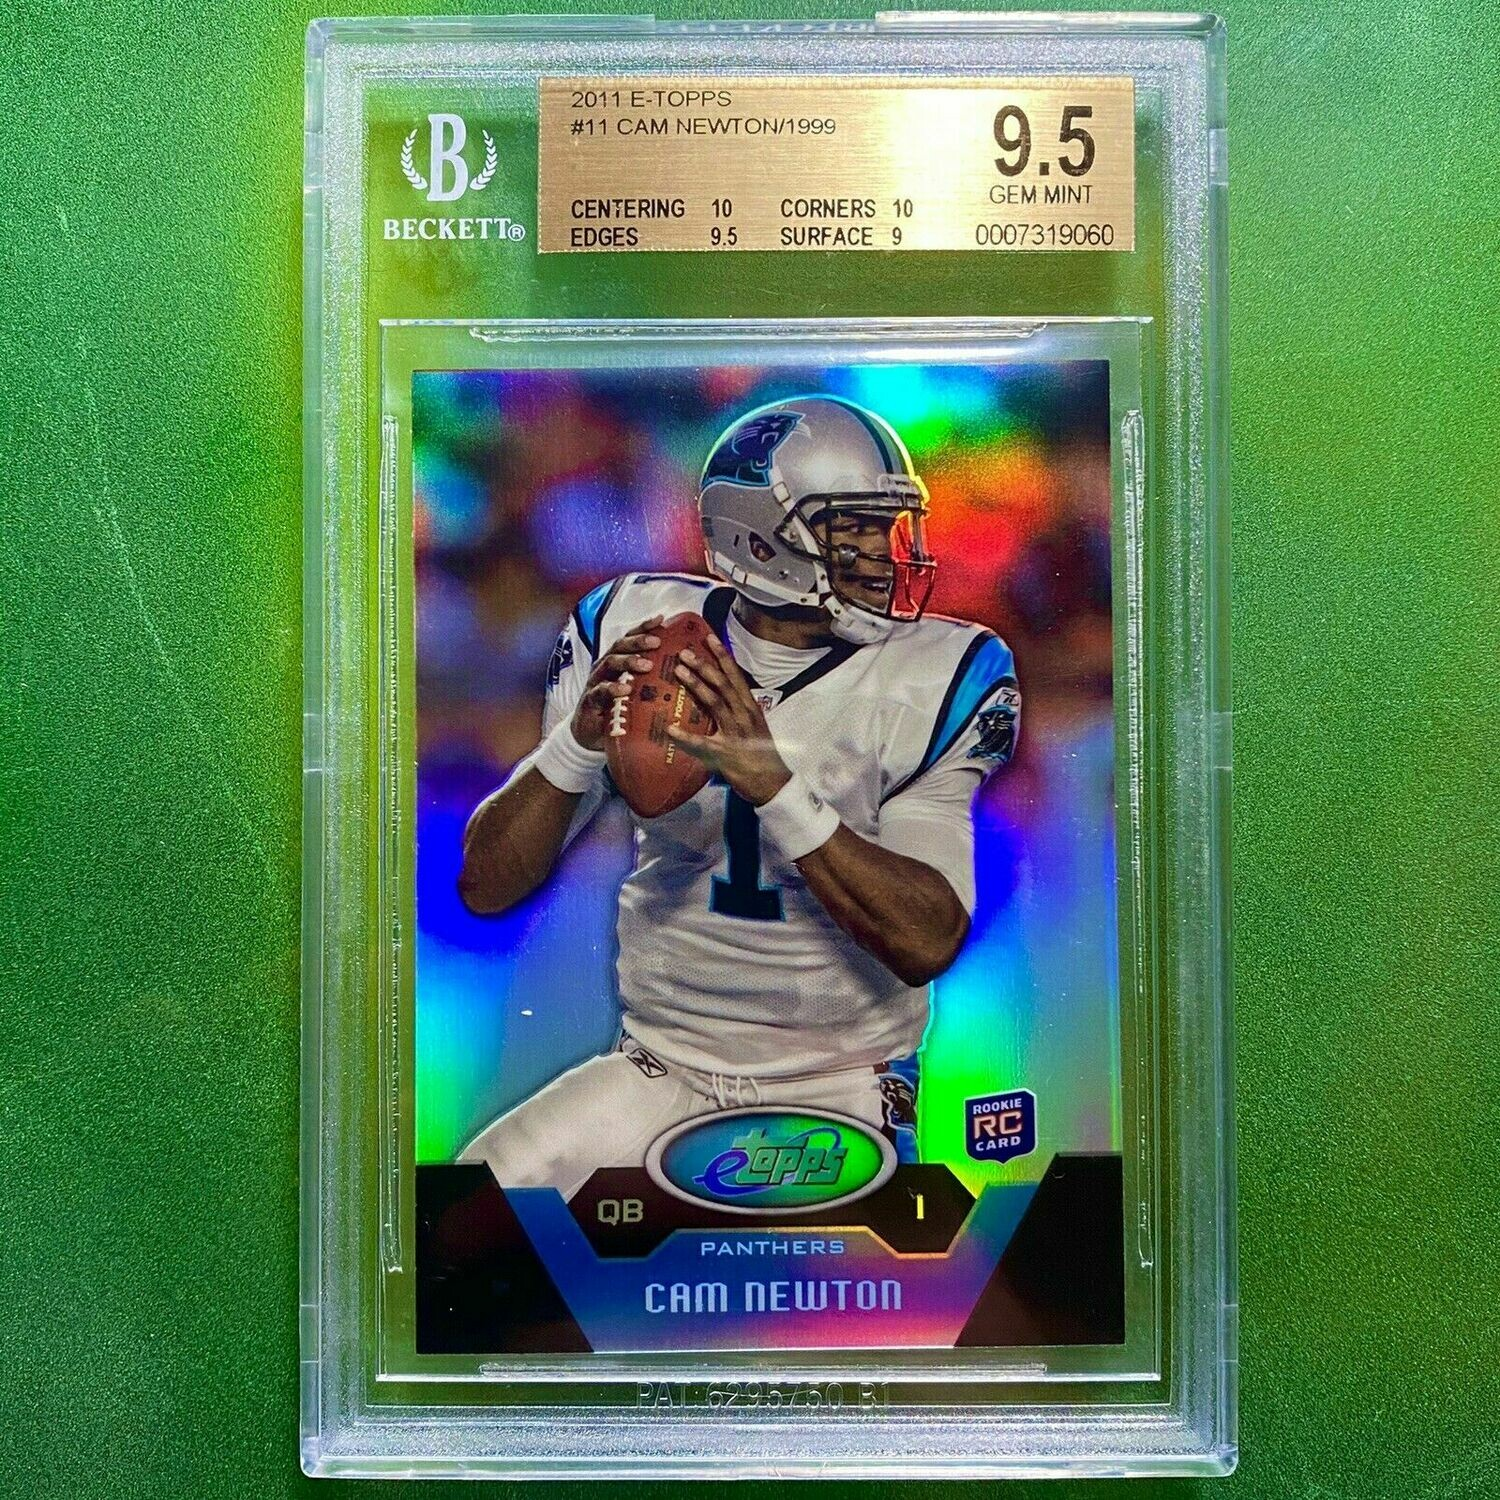 CAM NEWTON 2011 Topps Refractor Rookie | BGS 9.5 RC  0420/1999